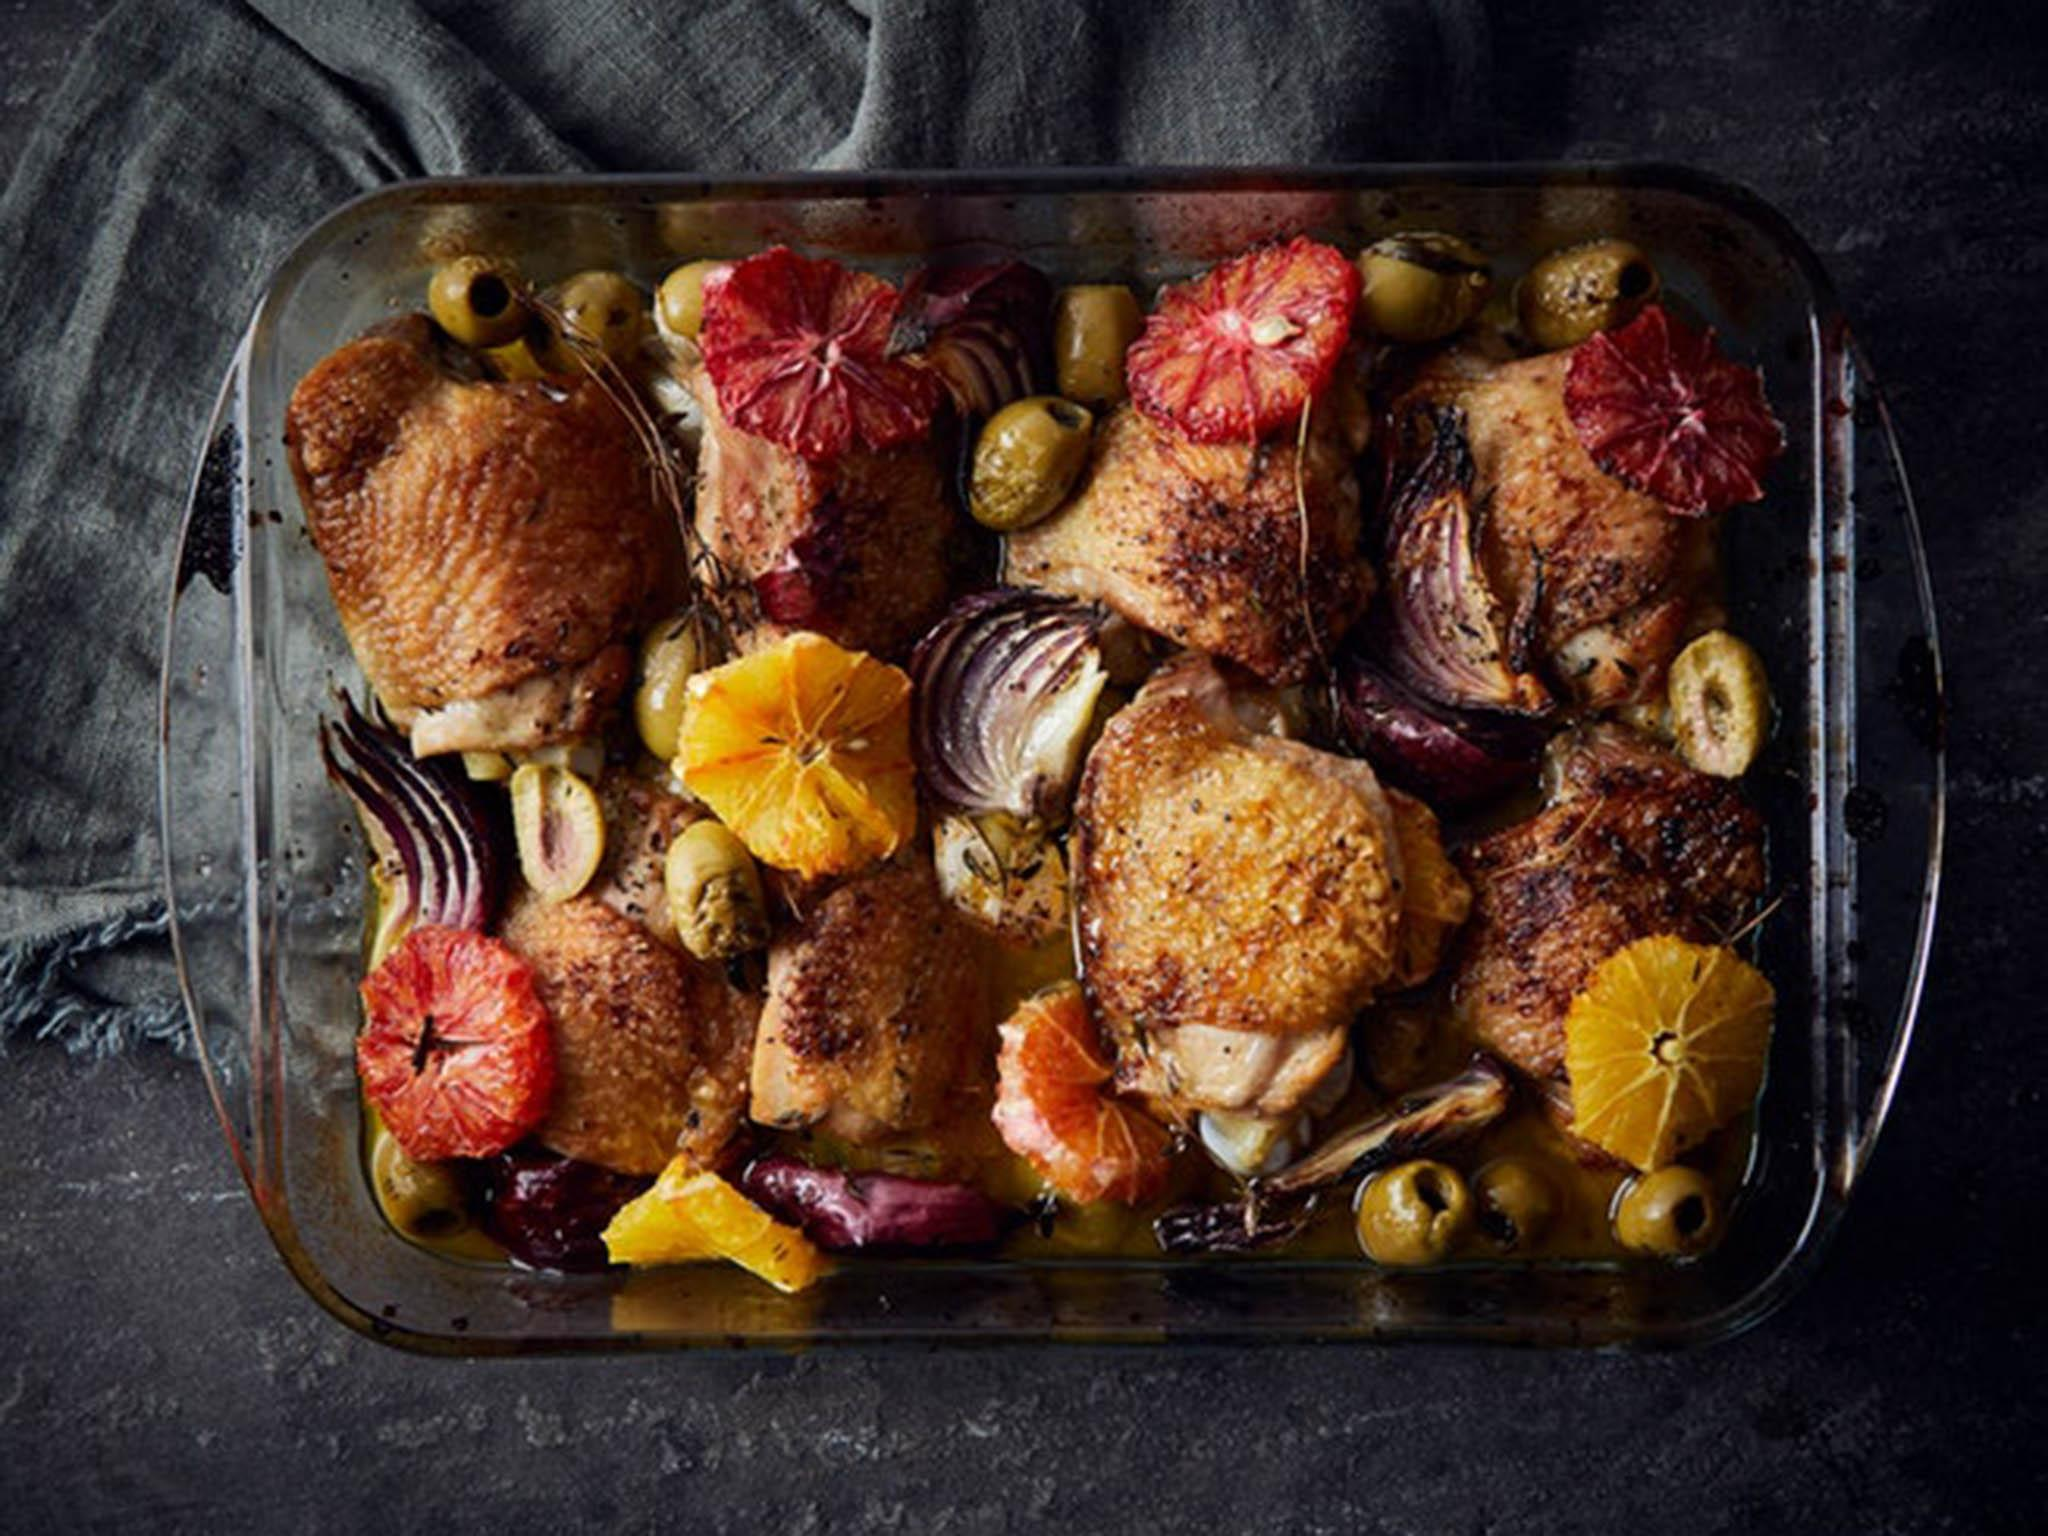 How to make Farmdrop's roast chicken with blood orange and green olives